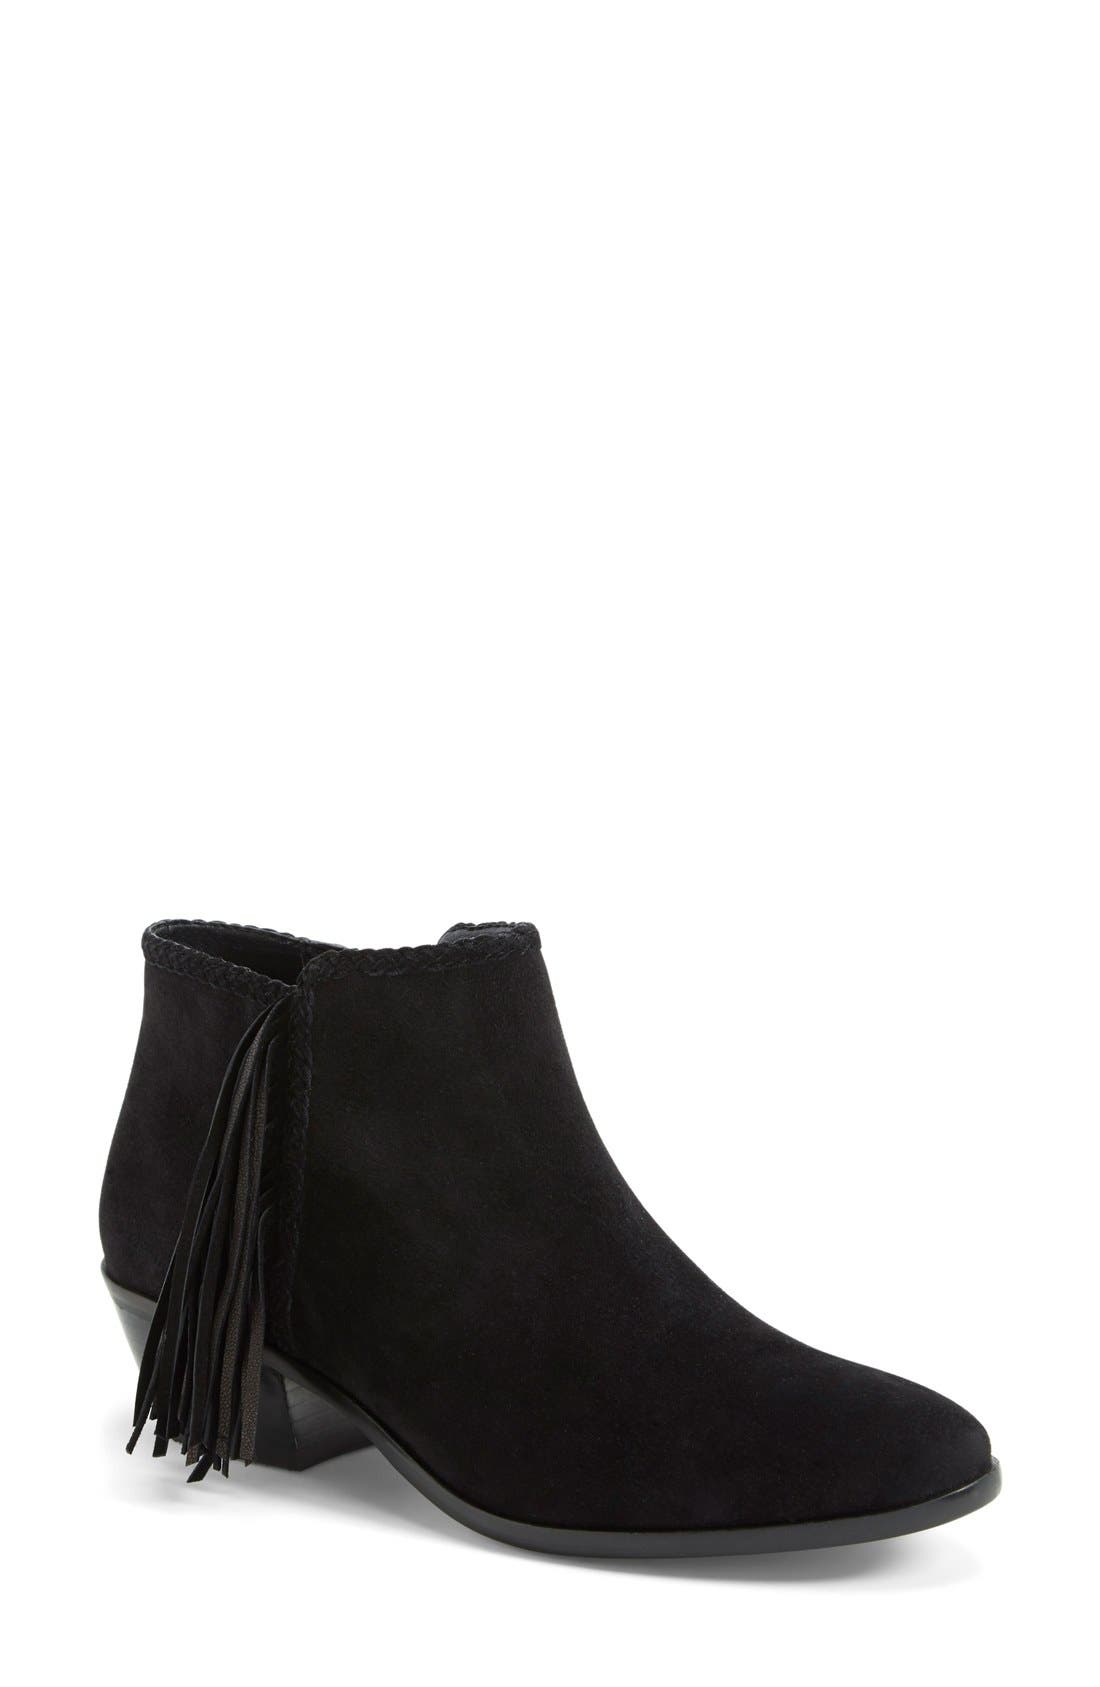 'Paige' Fringed Ankle Bootie,                             Main thumbnail 1, color,                             004